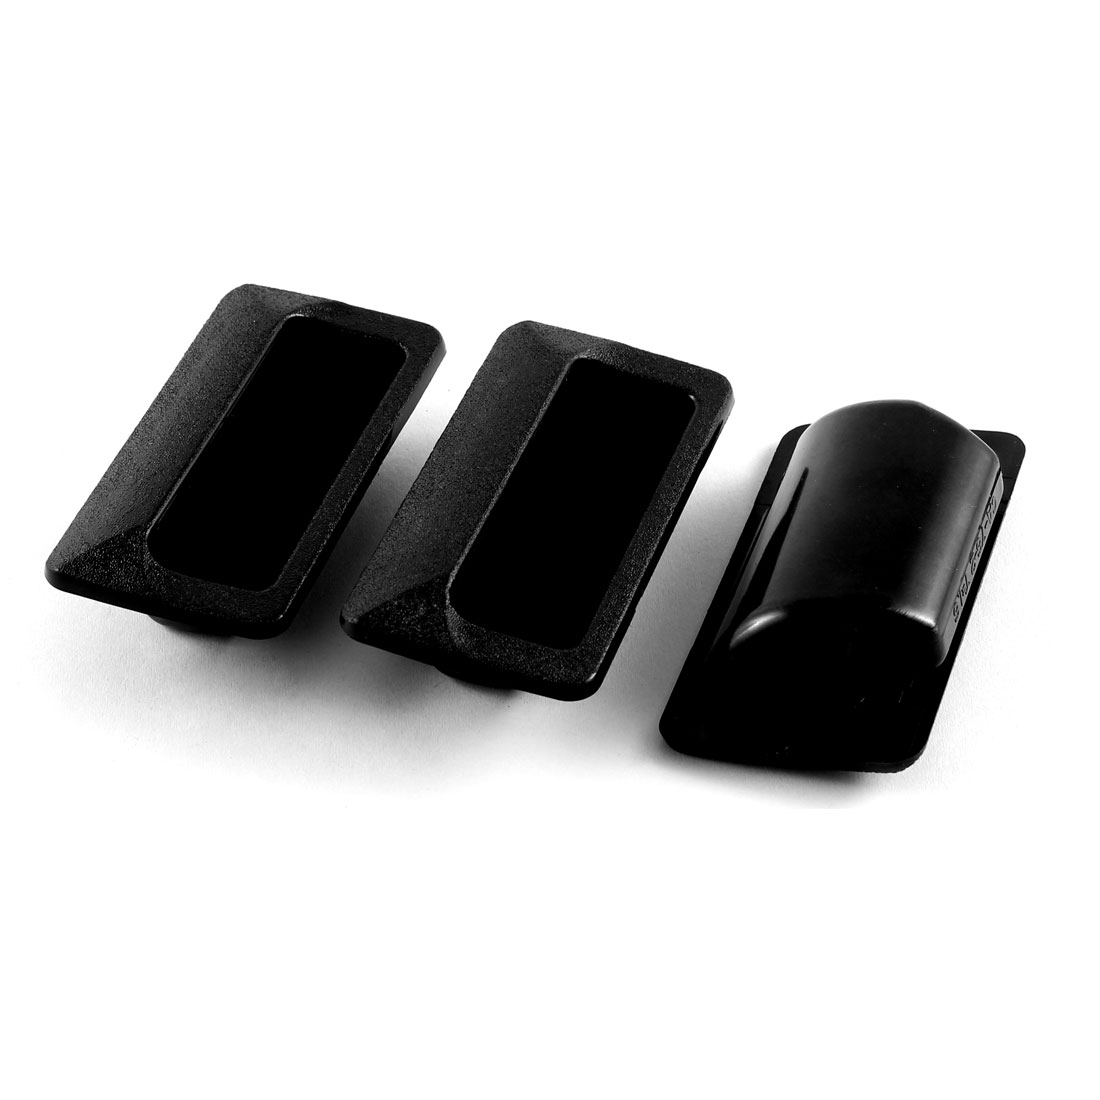 Cabinet Cupboard Drawer Recessed Black Plastic Flush Pull Handle 79 x 41mm 3pcs